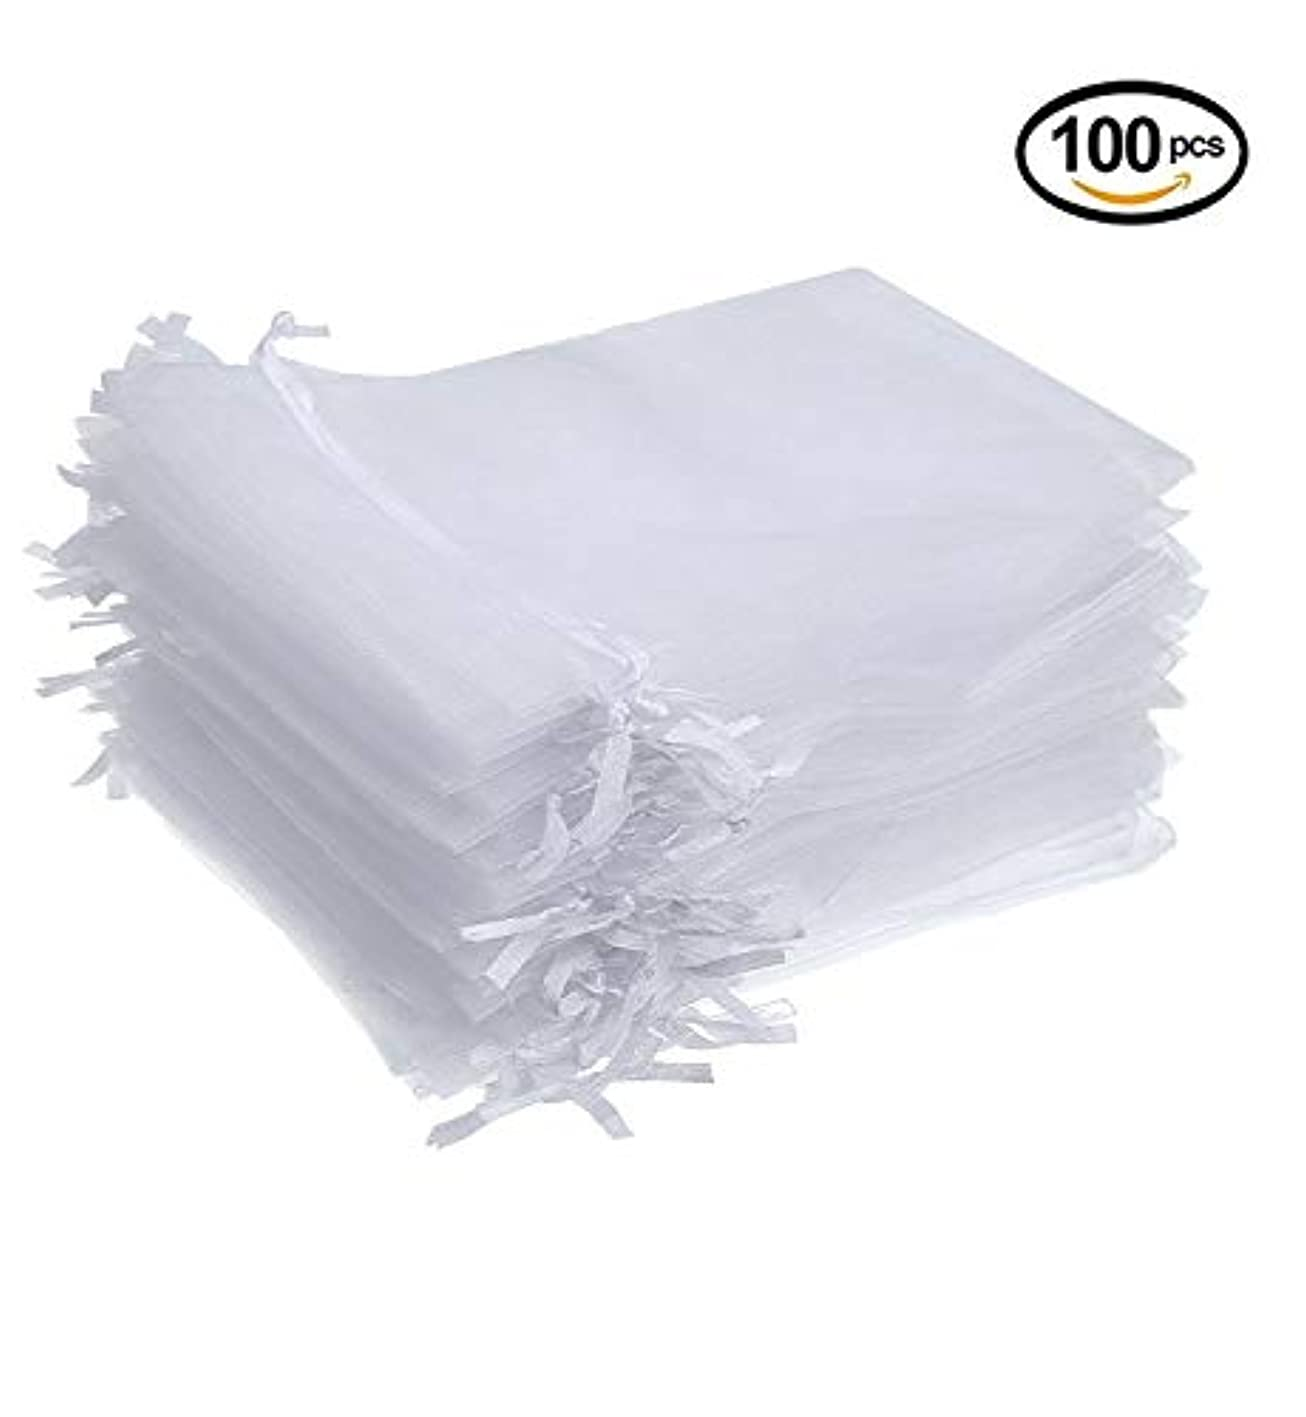 4 x 6 Inches 100 Pack White Organza Gift Bags Wedding Party Favor Bags Jewelry Pouches Wrap (100pcs White 4 x 6 Inches) prfhaqdwwmu084